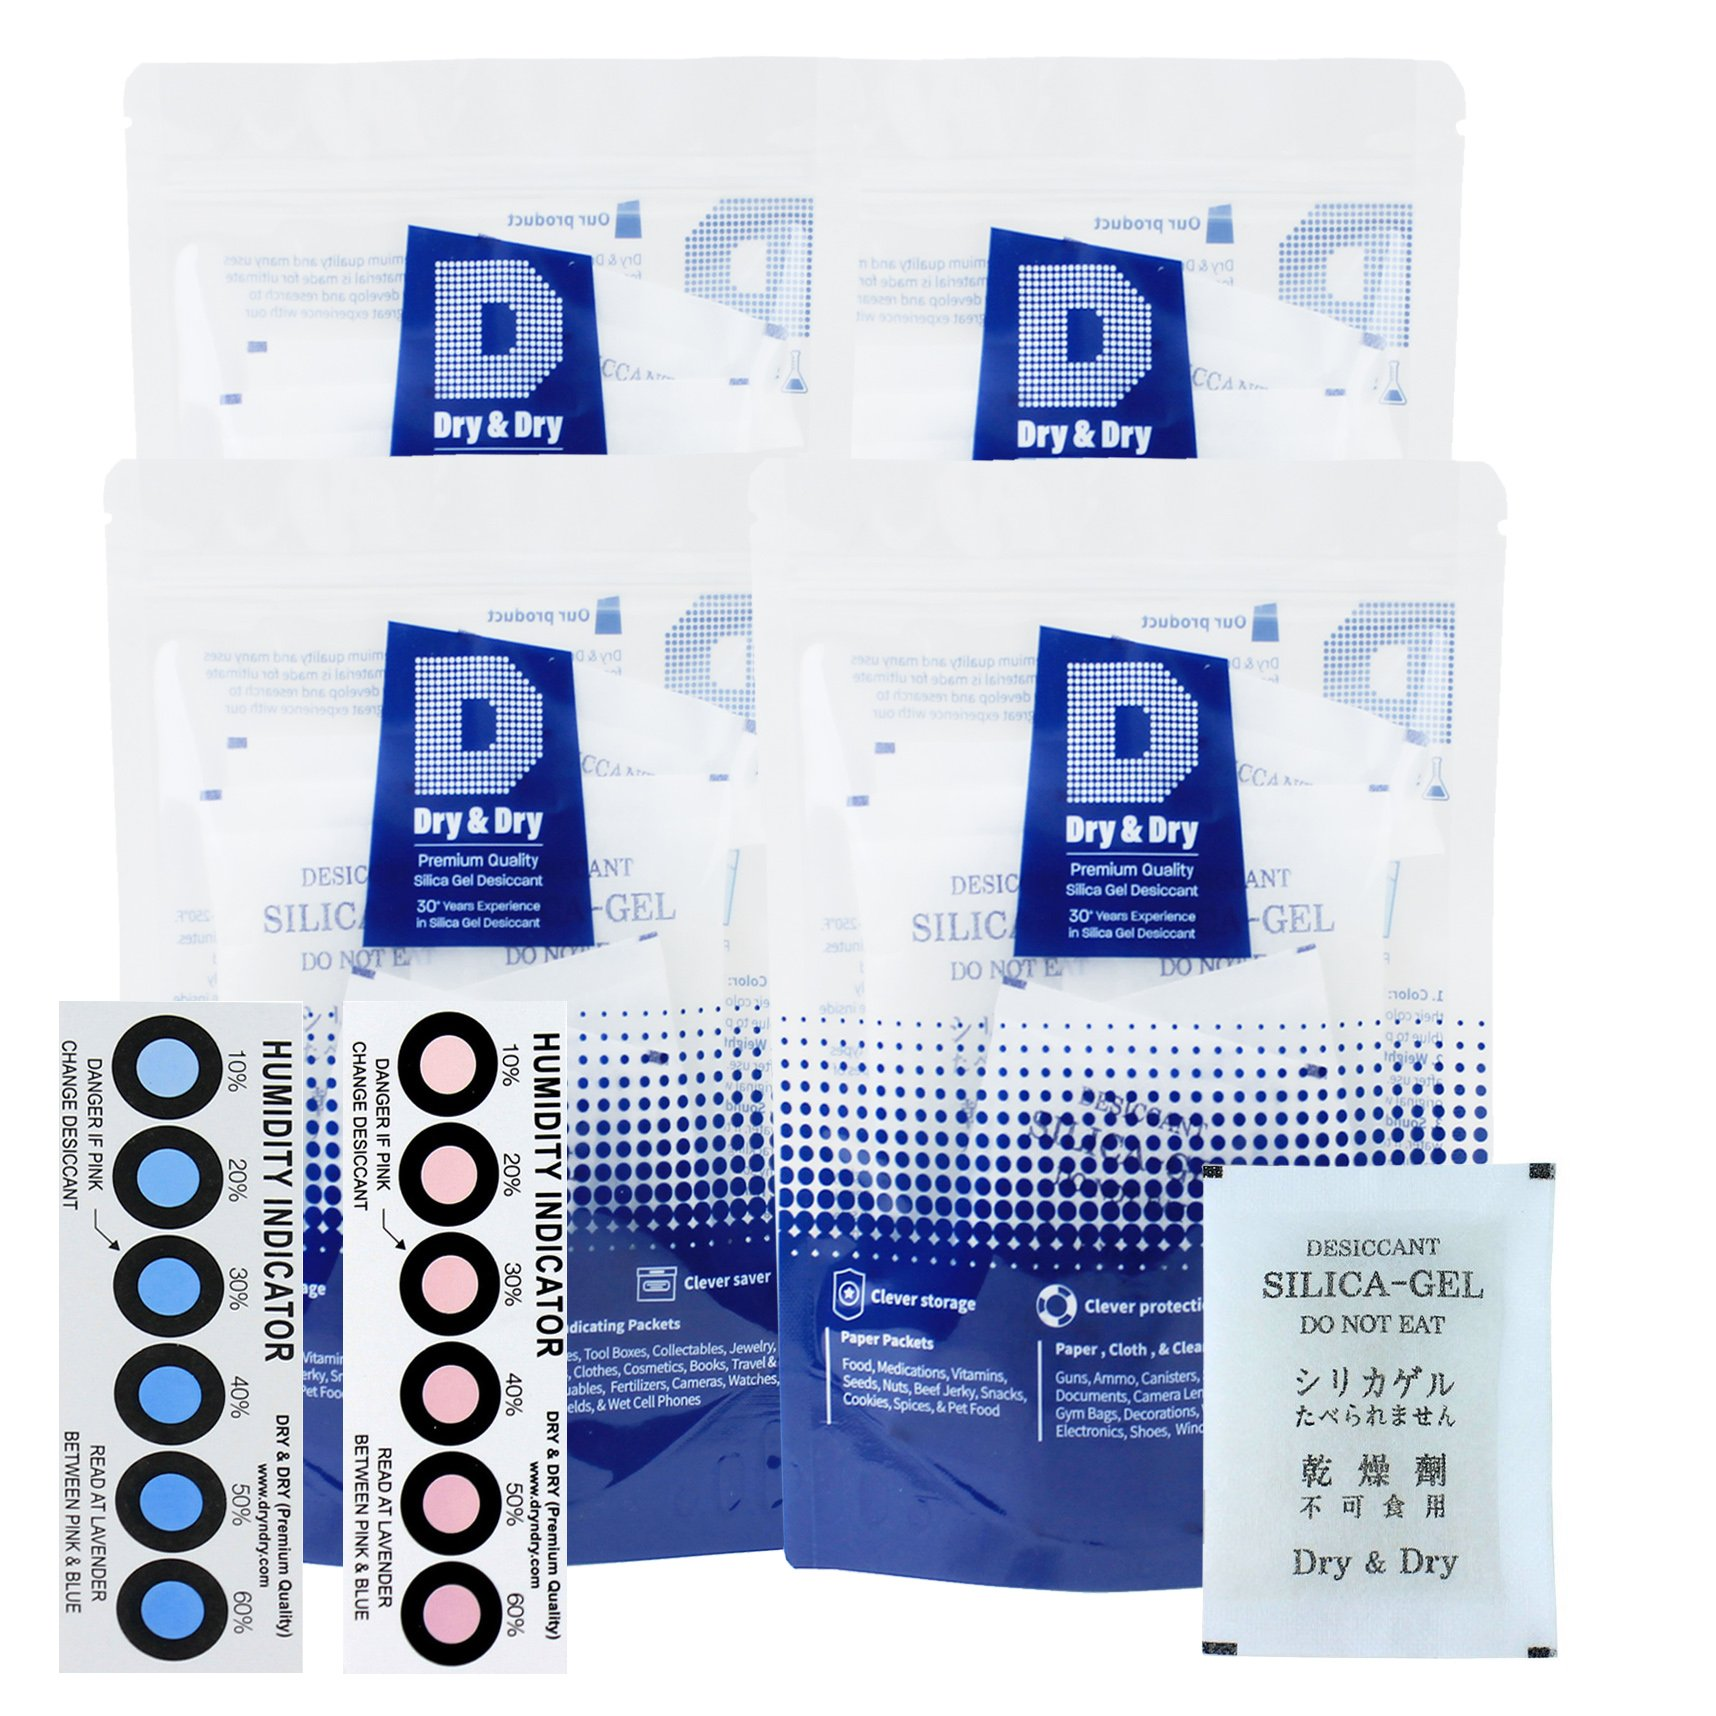 Dry & Dry 20 Gram [100 Packets] Premium Pure & Safe Silica Gel Packets Desiccant Dehumidifier - Rechargeable Fabric Silica Packets for Moisture